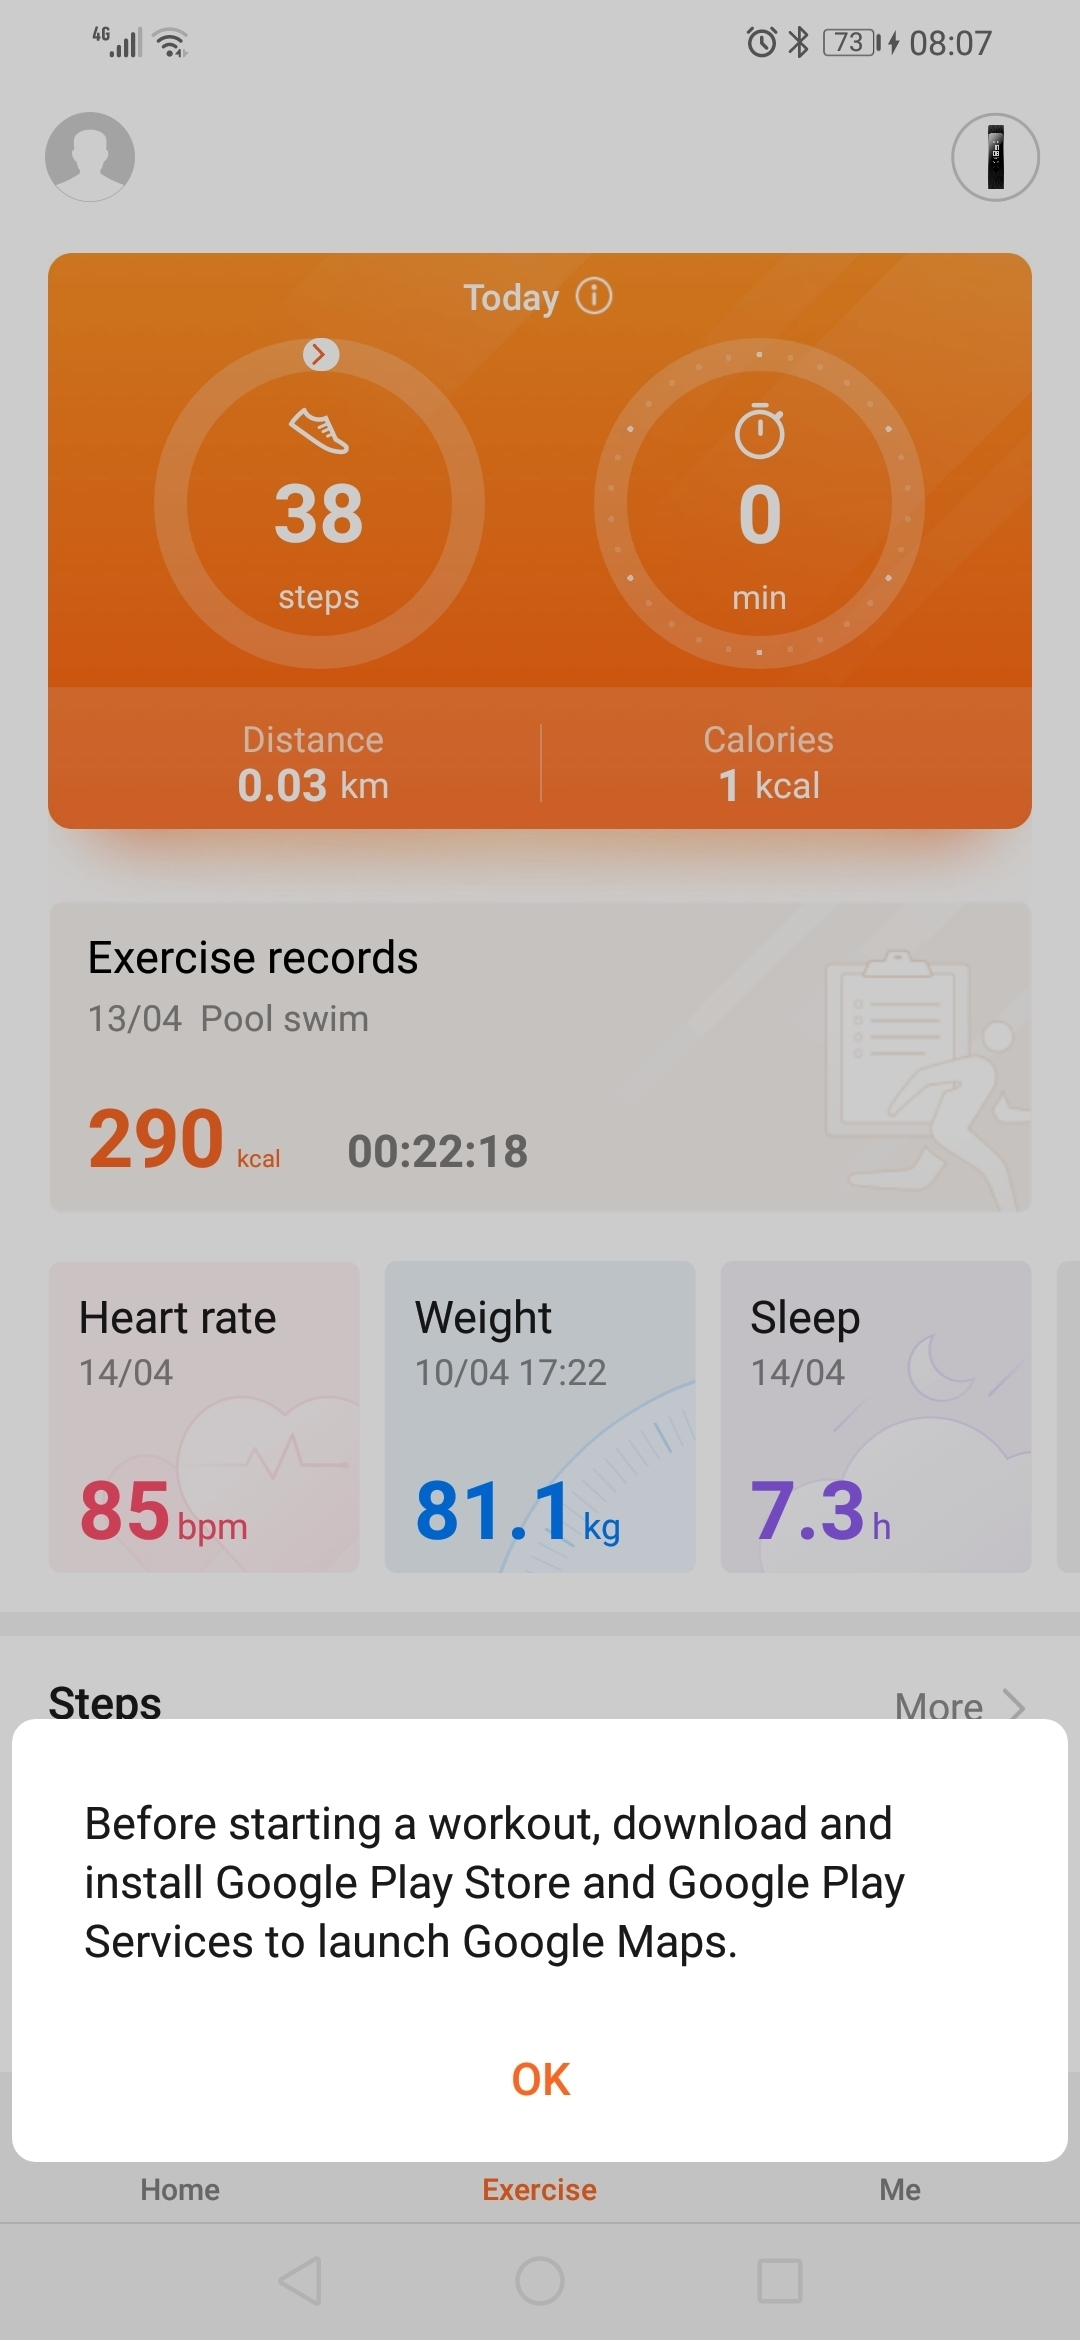 Huawei health and google maps | Official Huawei Community UK